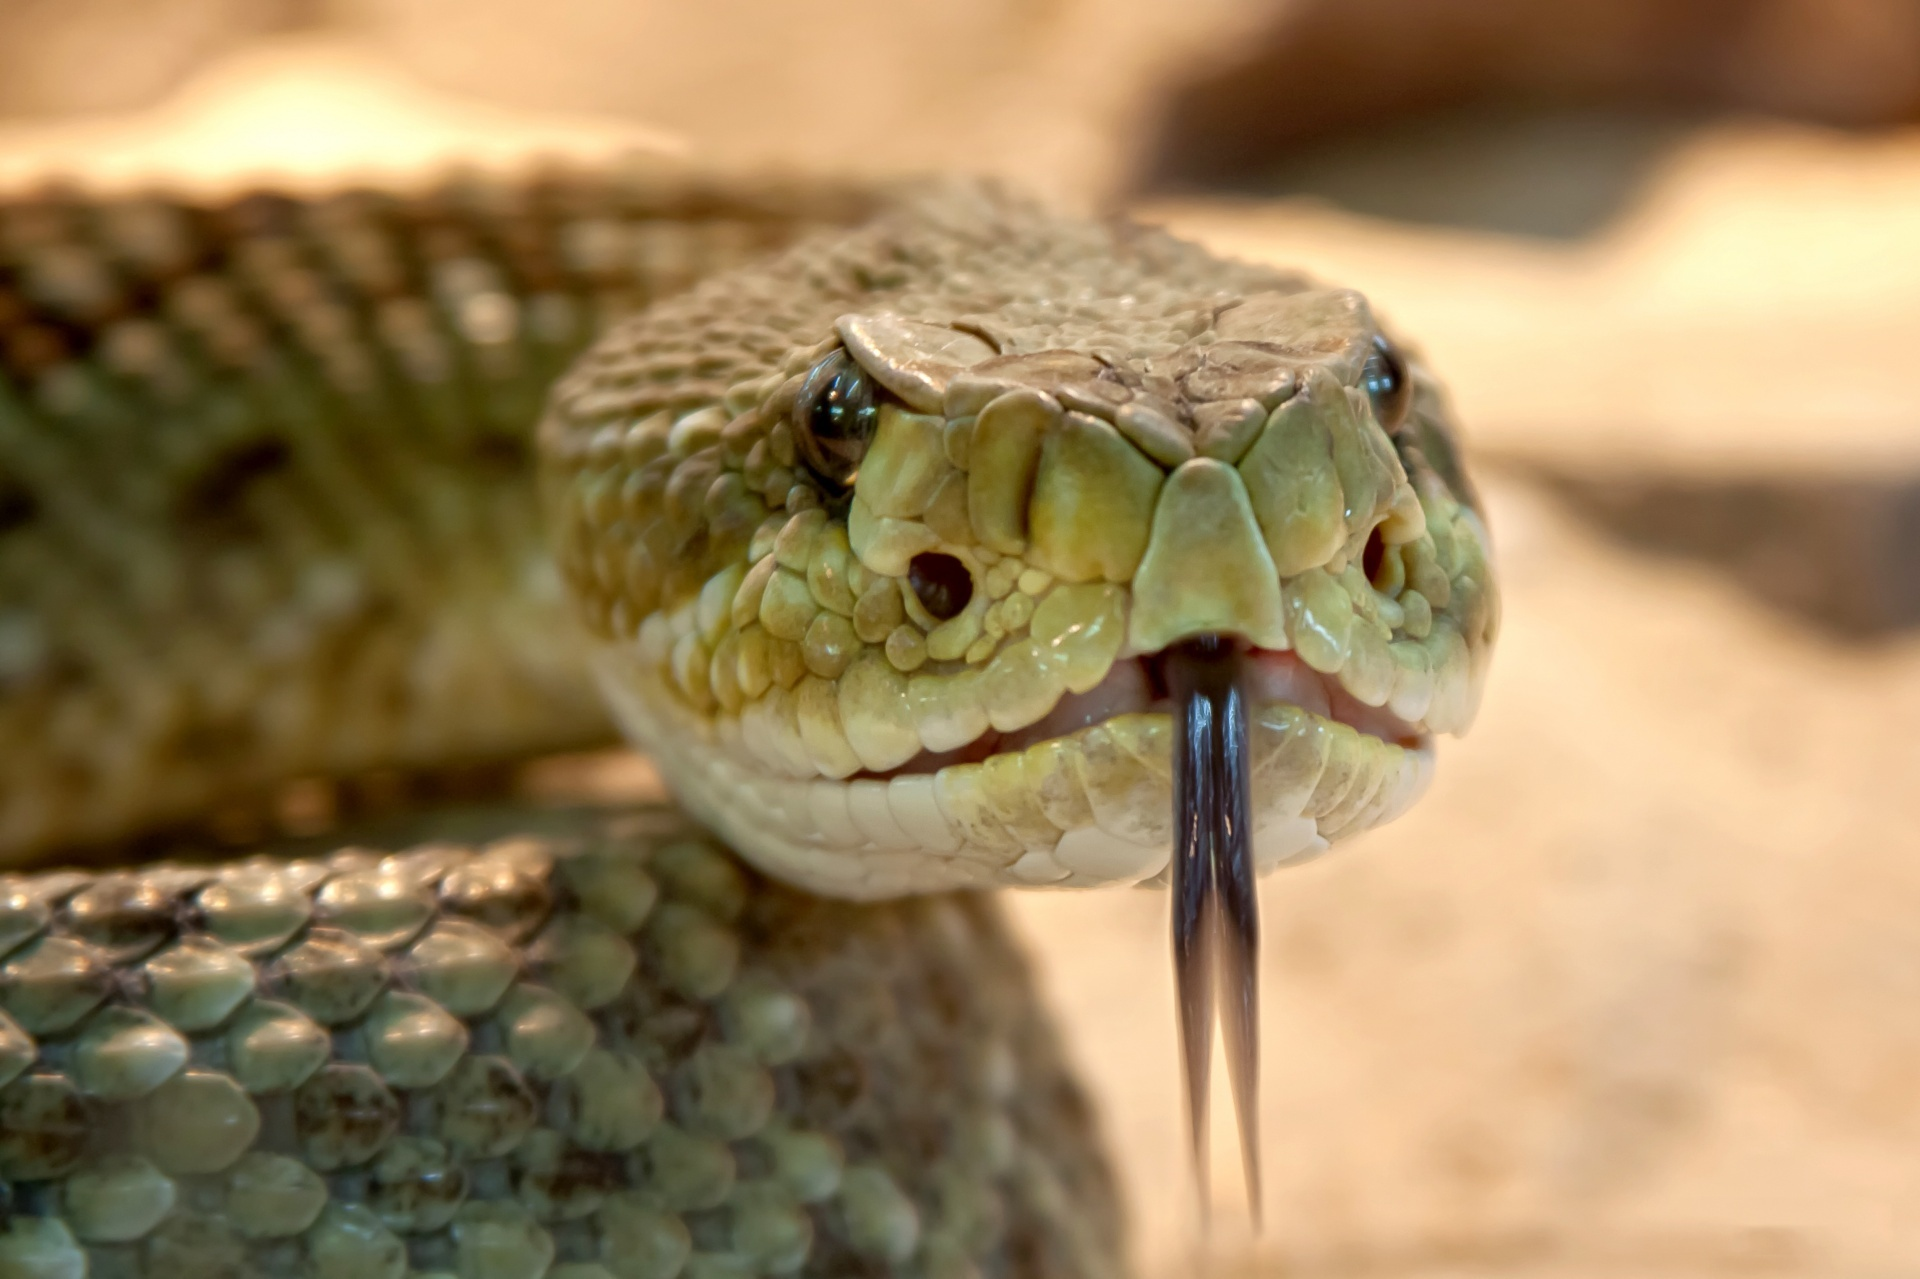 Close up of a rattlesnake